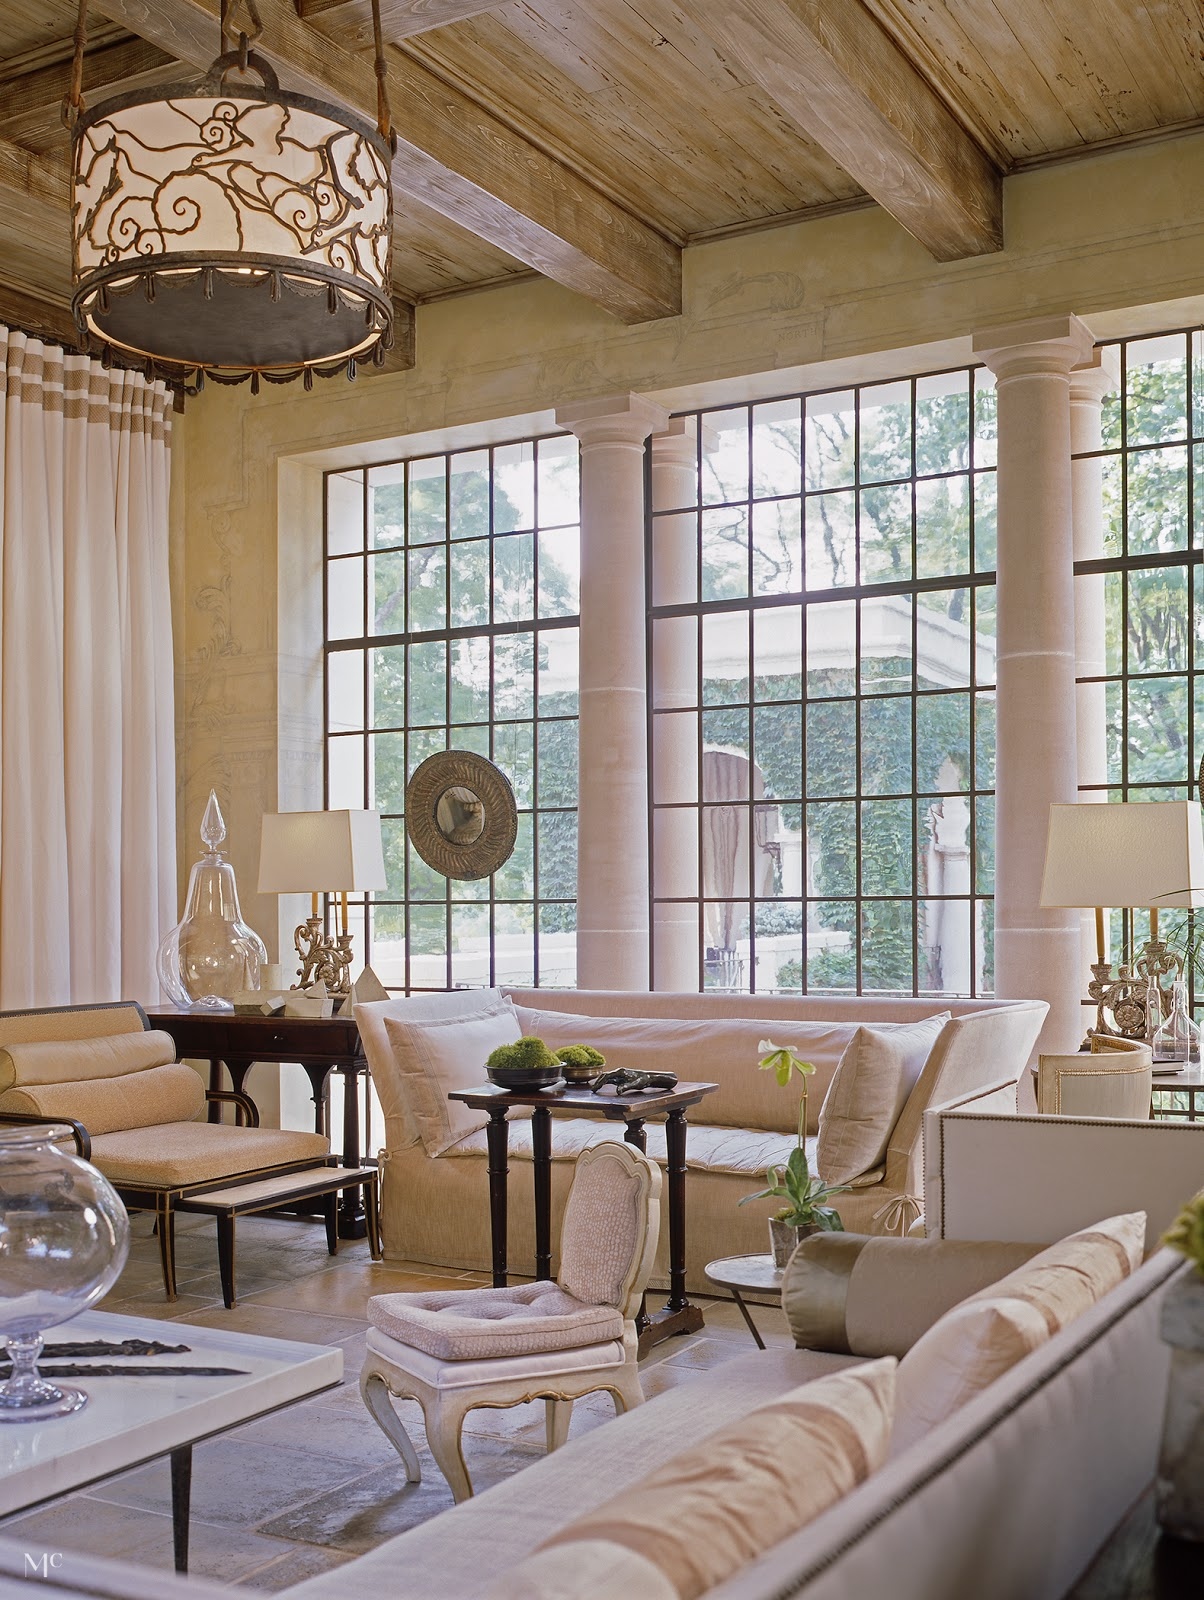 Décor Inspiration | Classic Romance: Old Meets New in this Nashville Home